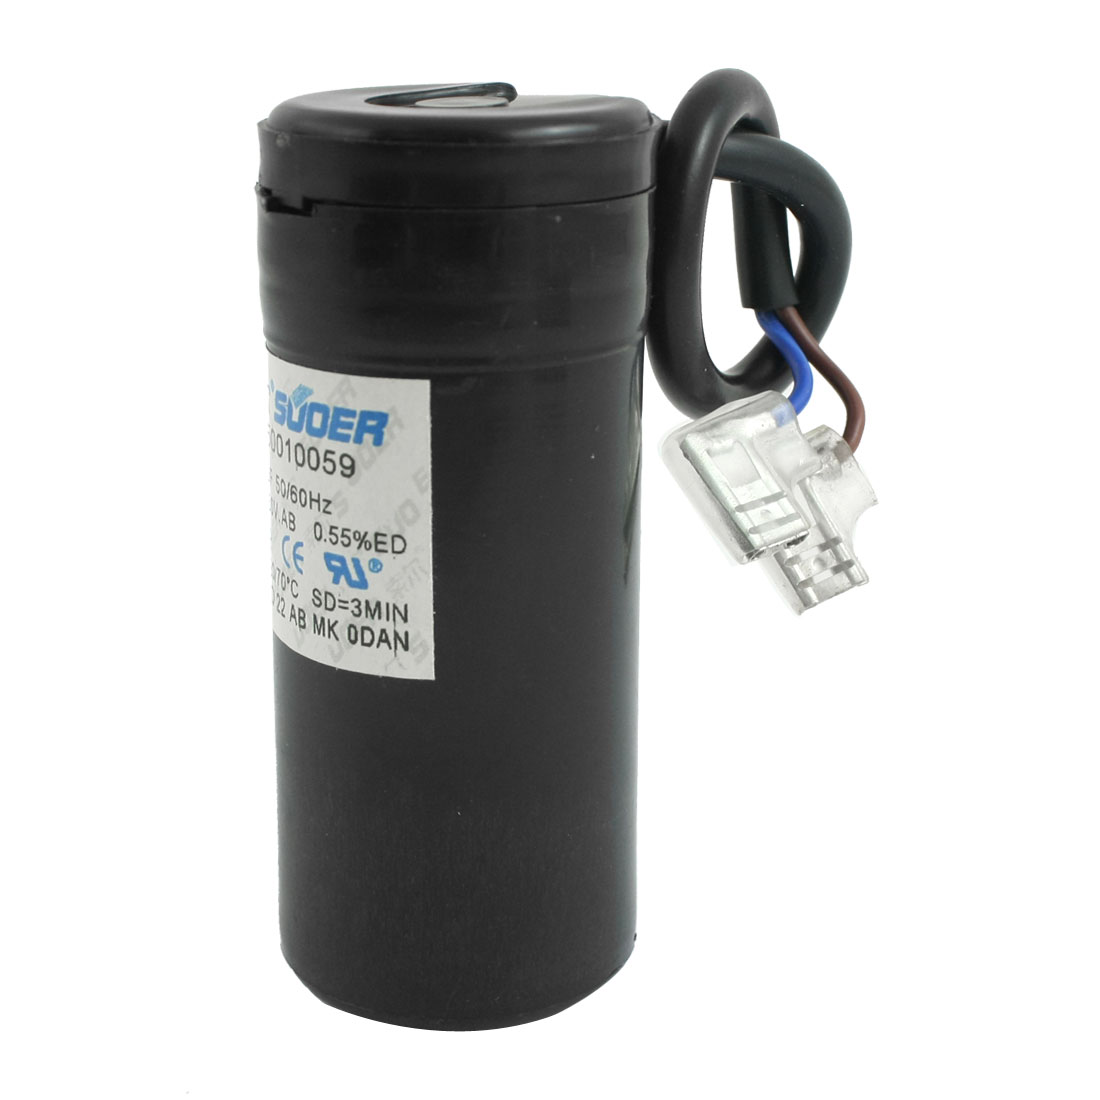 80uF 0.55% Tolerance Air-conditioner Compressor Motor Start Capacitor AC 330V